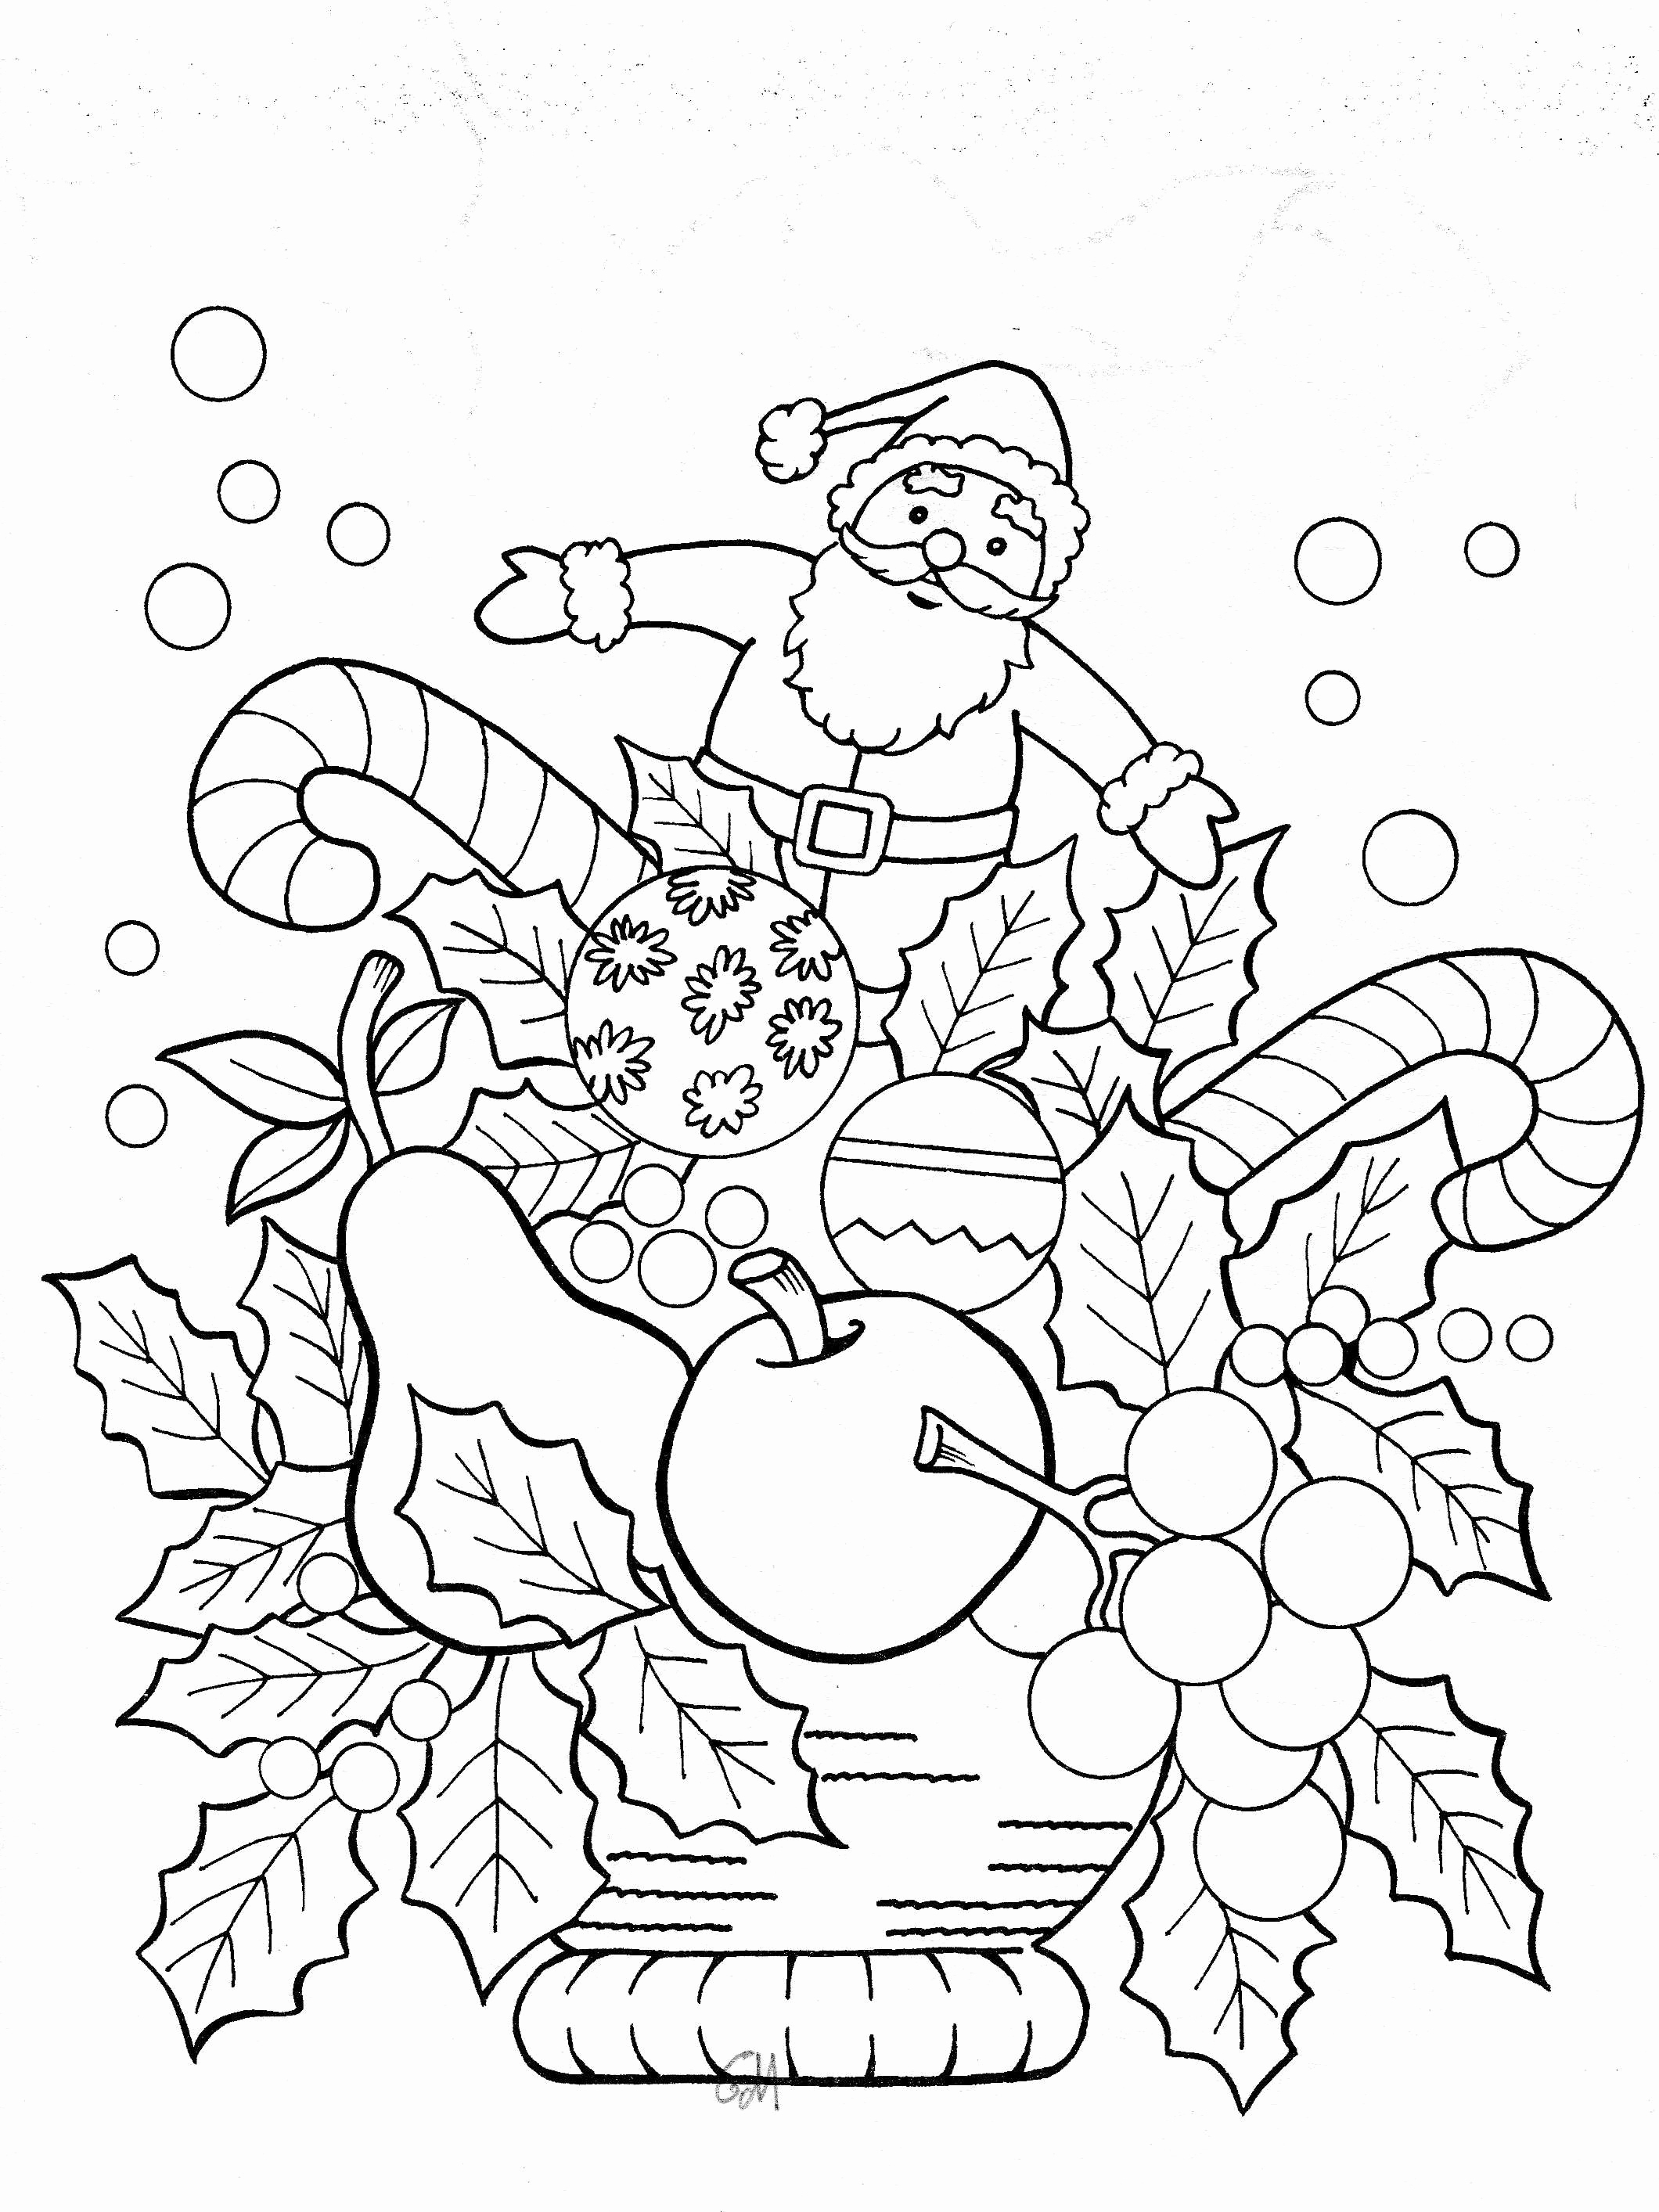 School Coloring Pages 28 Free Coloring Pages For Sunday School Gallery Coloring Sheets